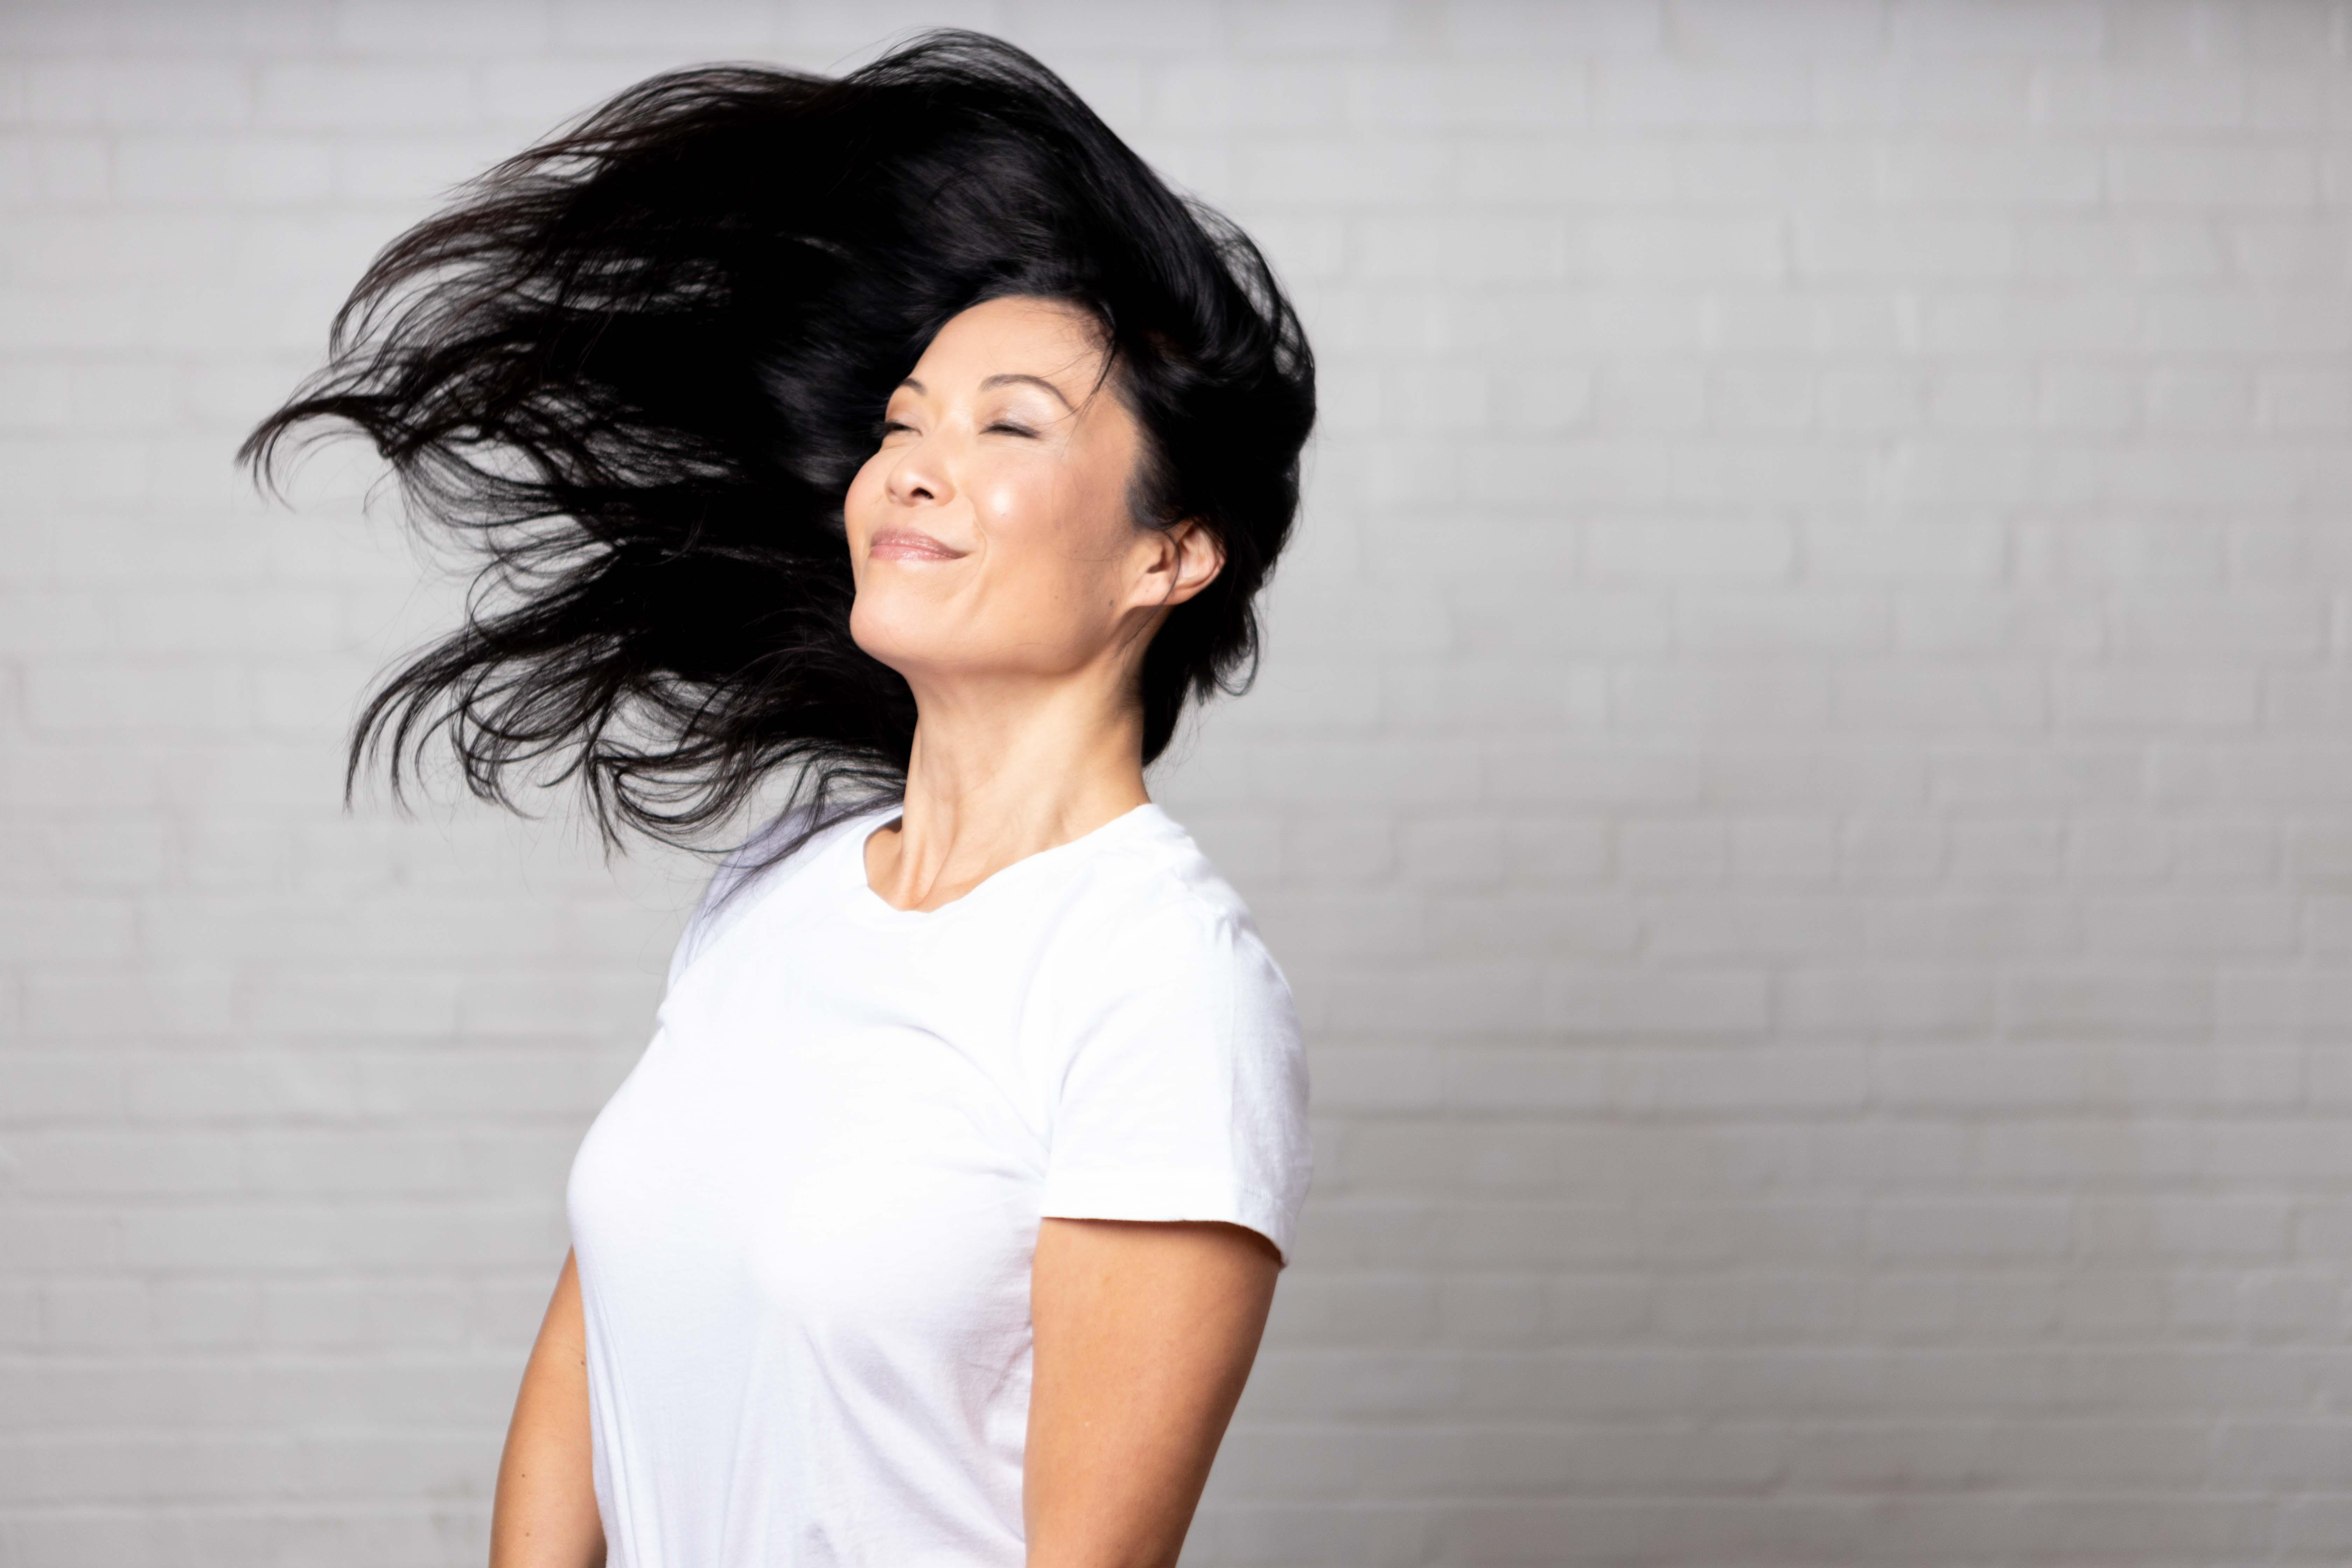 Smiling woman with hair blowing